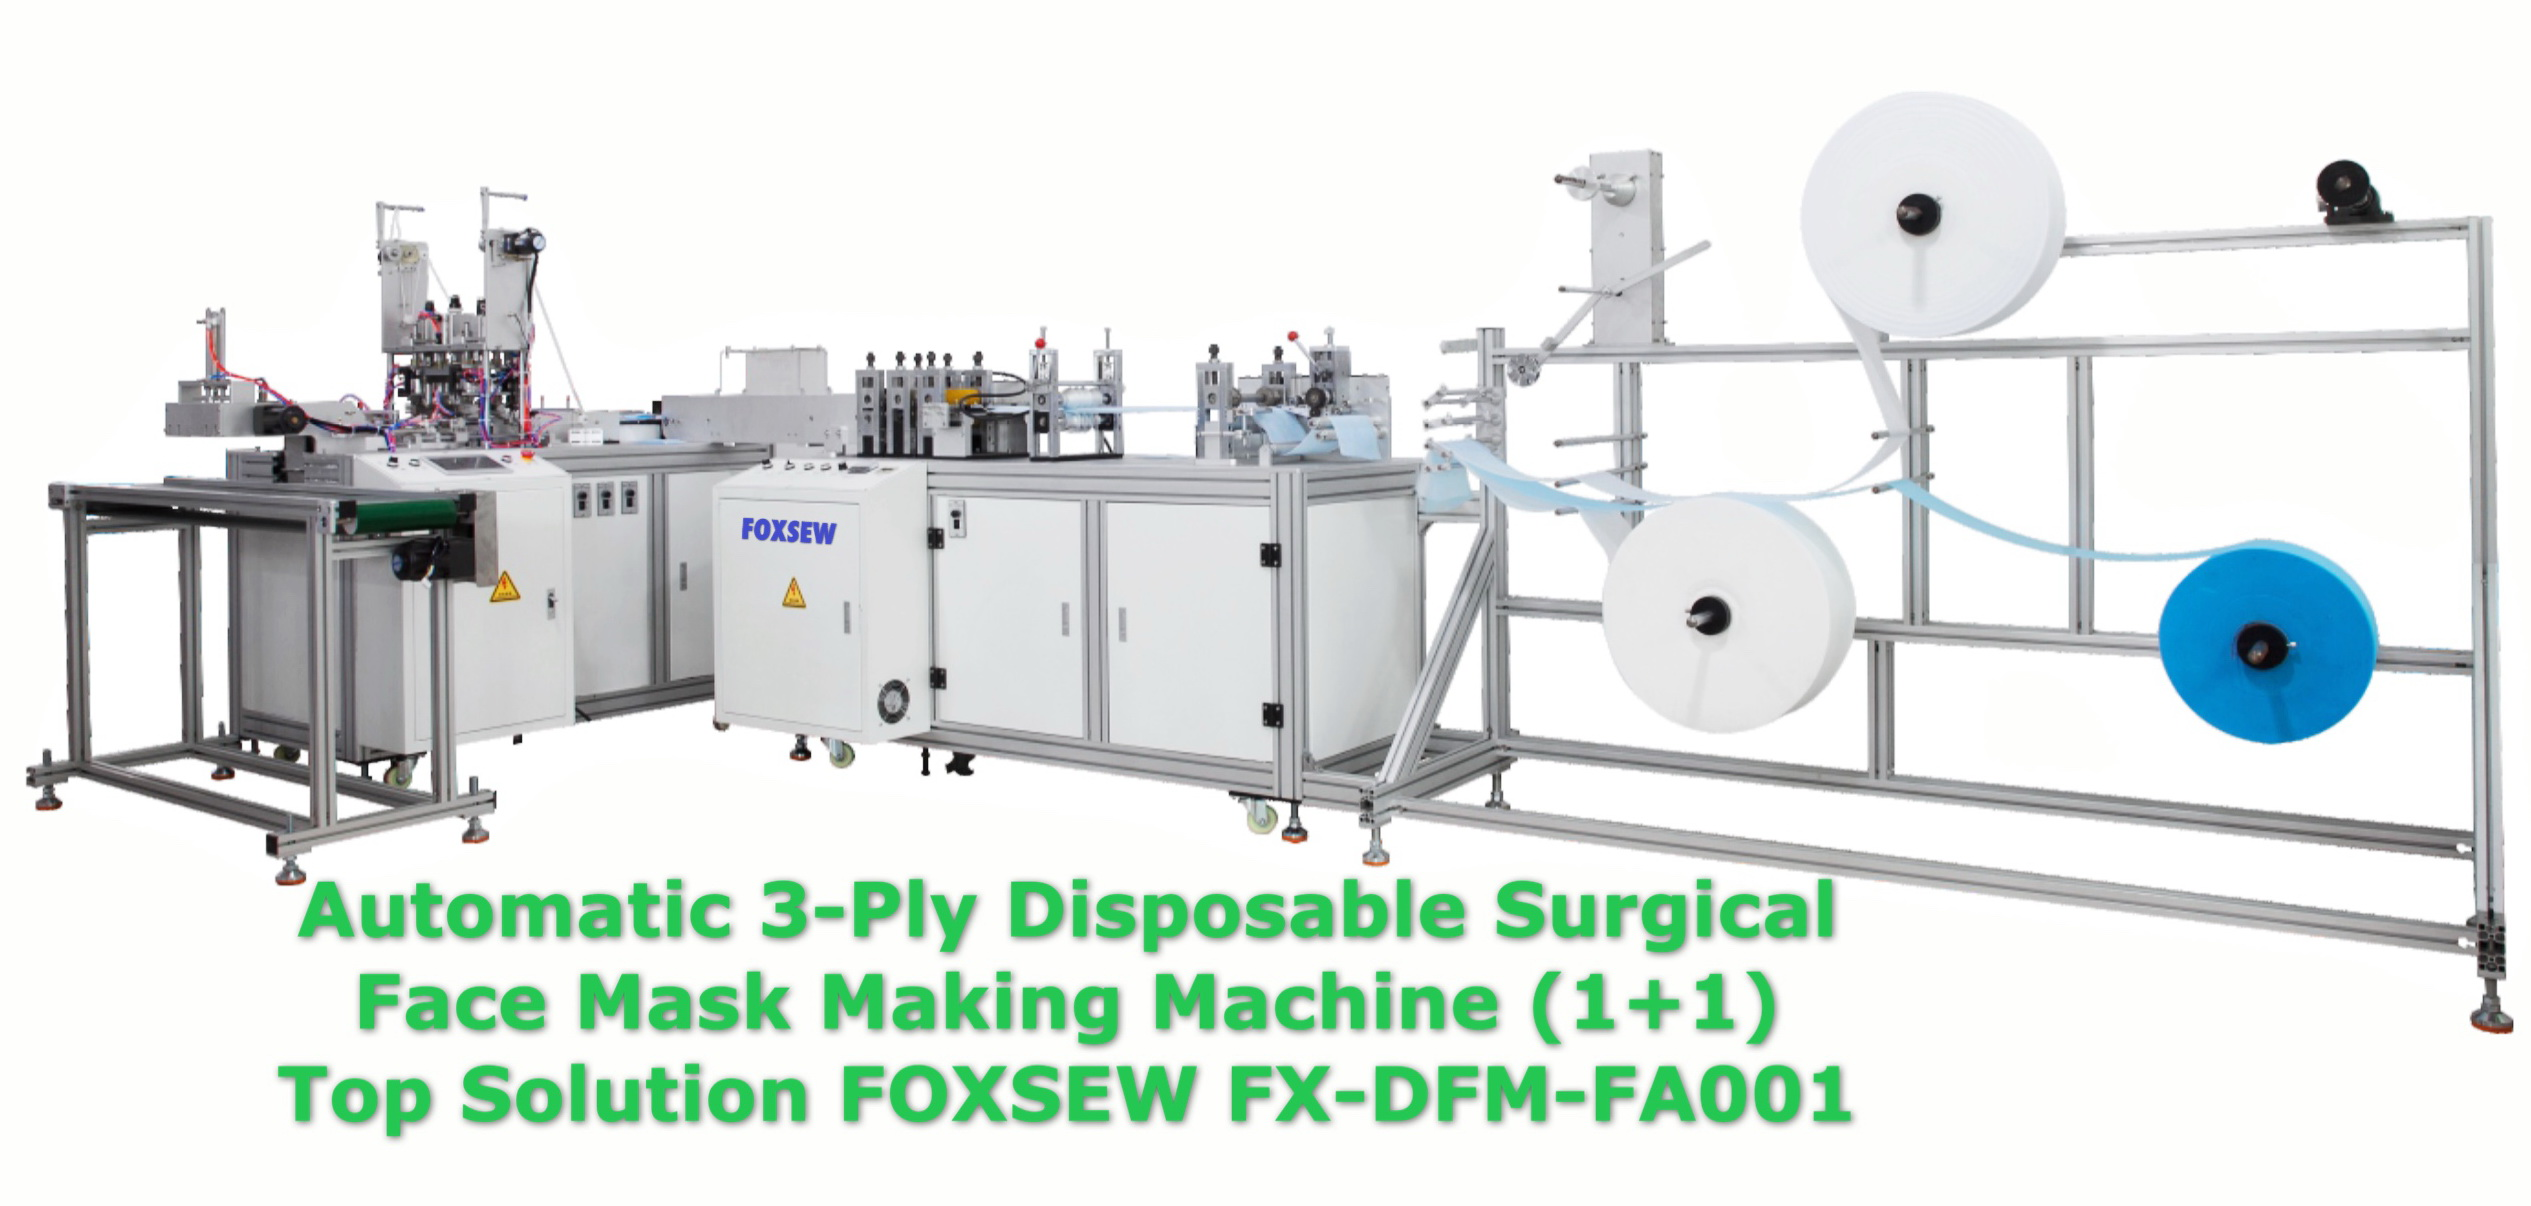 Automatic 3-Ply Disposable Surgical Face Mask Making Machine -1